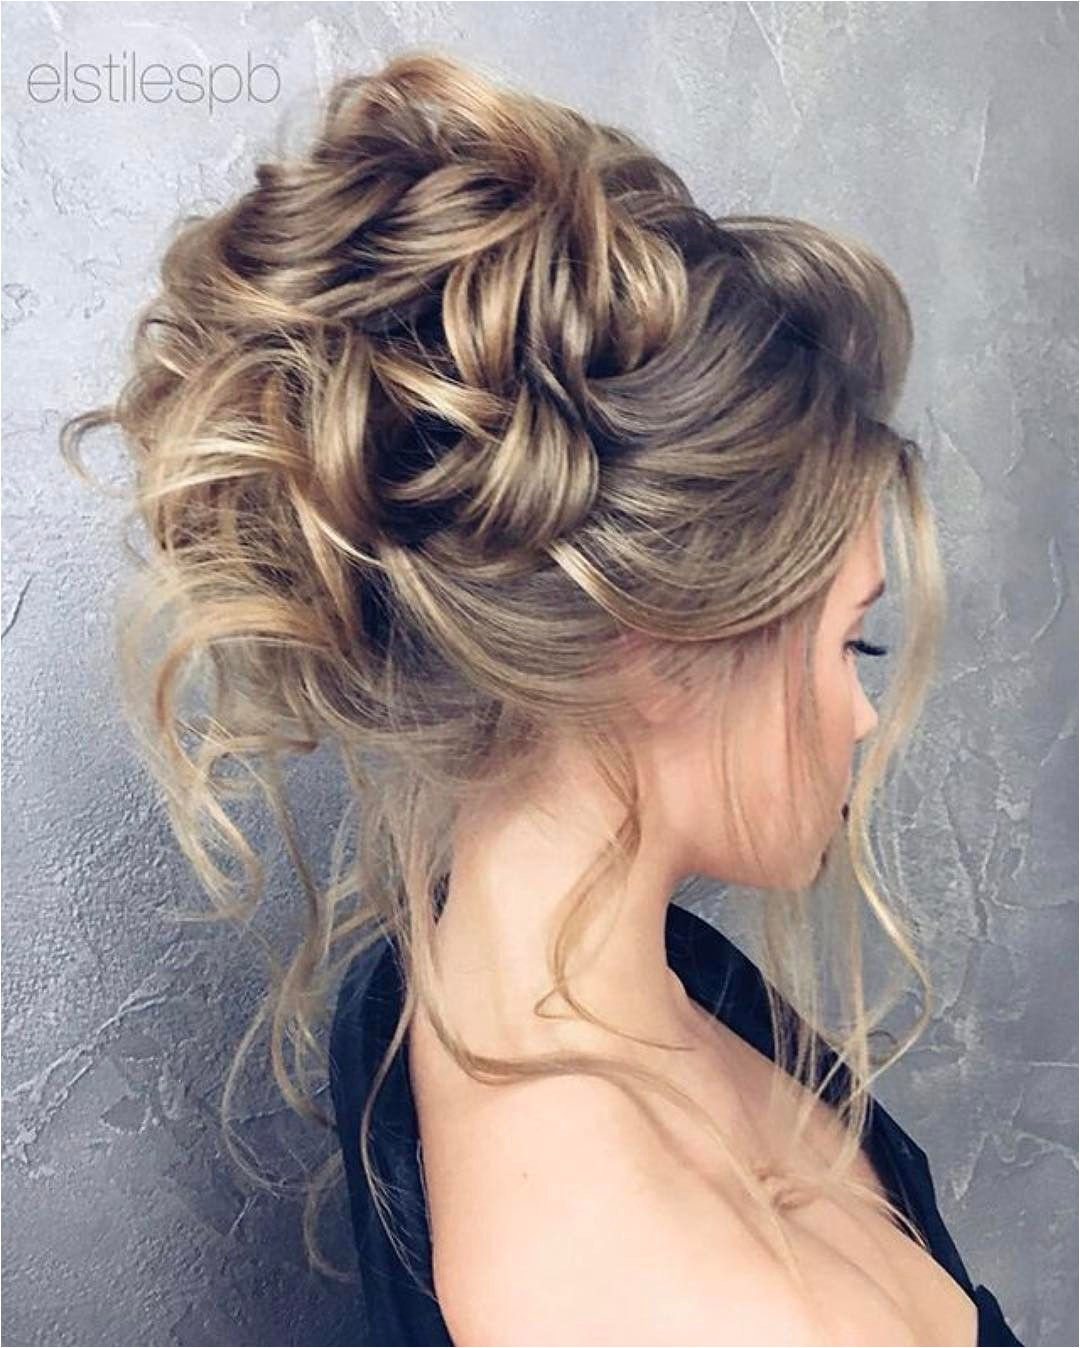 Formal Hairstyles Updos From Back Beautiful Updo Hairstyles Upstyles Elegant Updo Chignon Bridal